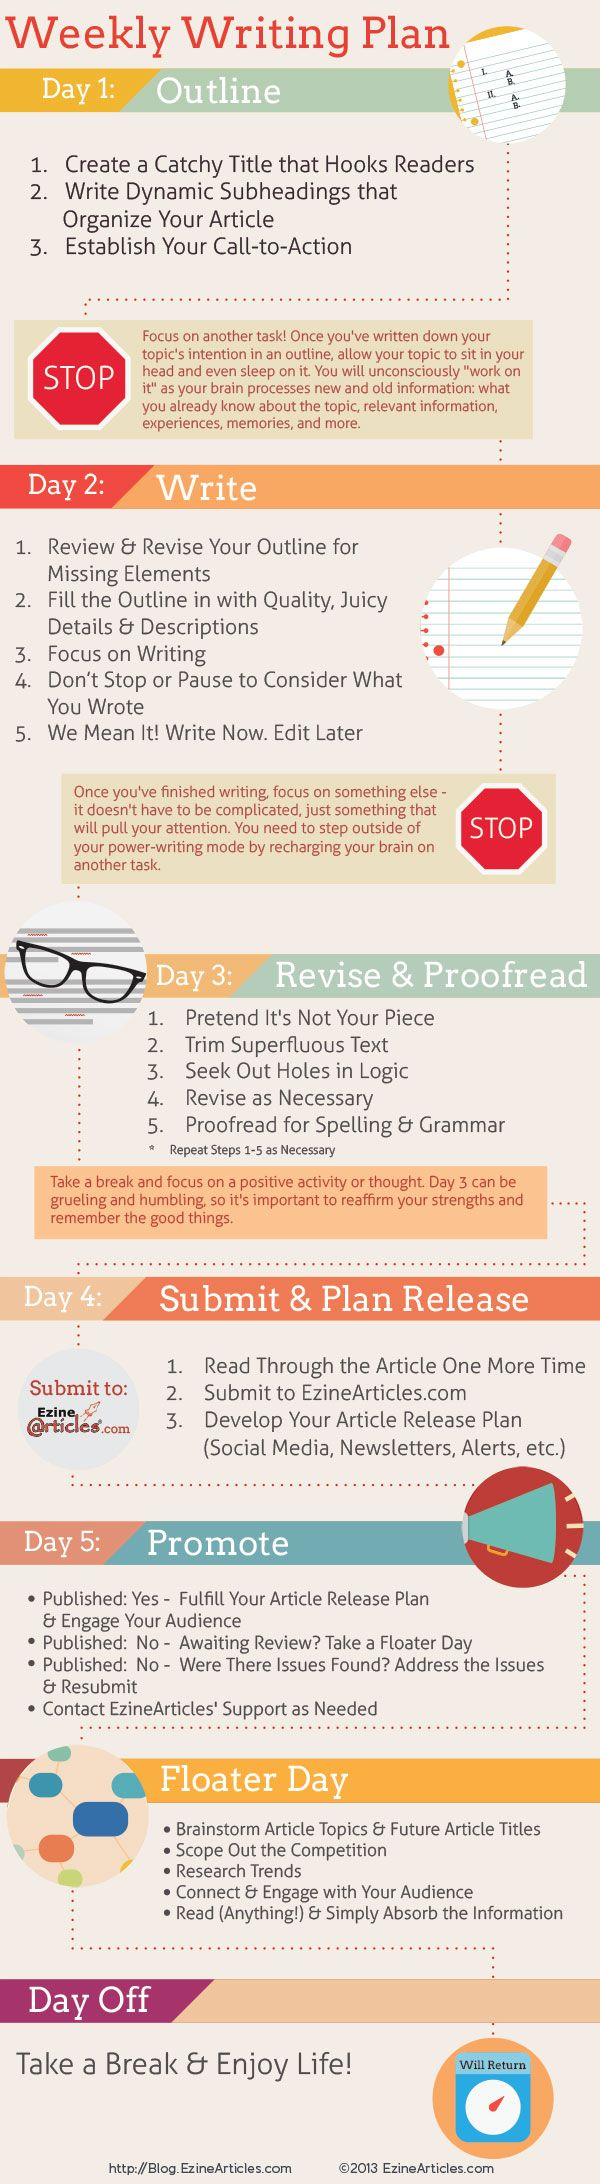 Make exercising your writing muscles a daily habit by incorporating this easy Weekly Writing Plan into your routine. This infographic from ezine will help